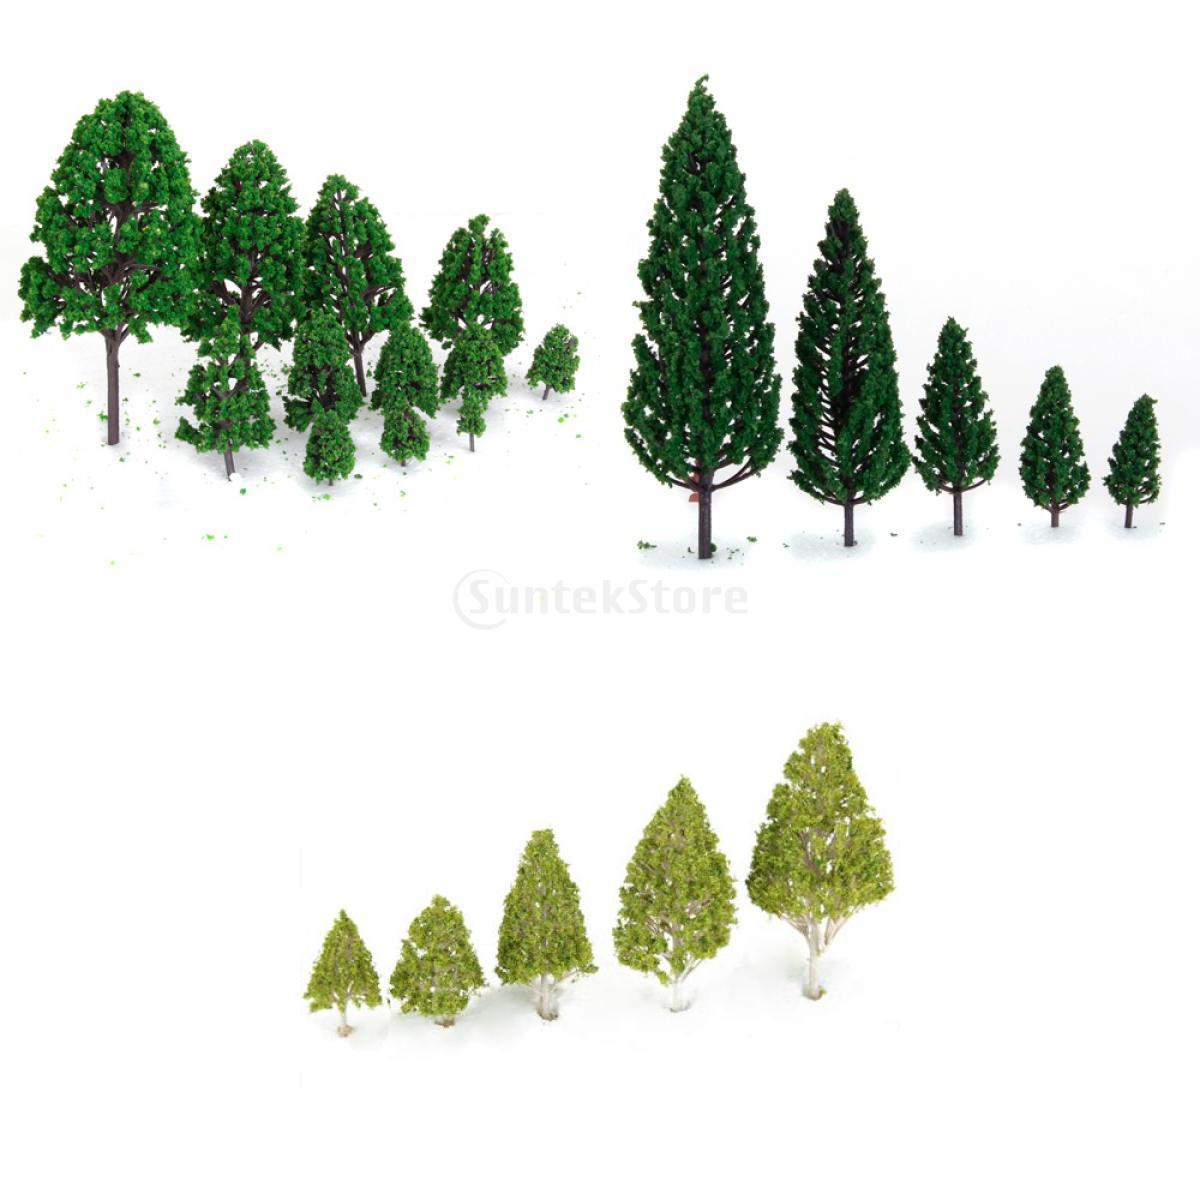 New 2015 27 Mixed Model Trees Train Railways Architecture War Game Scenery Layout 3-16 cm Free Shipping(China (Mainland))